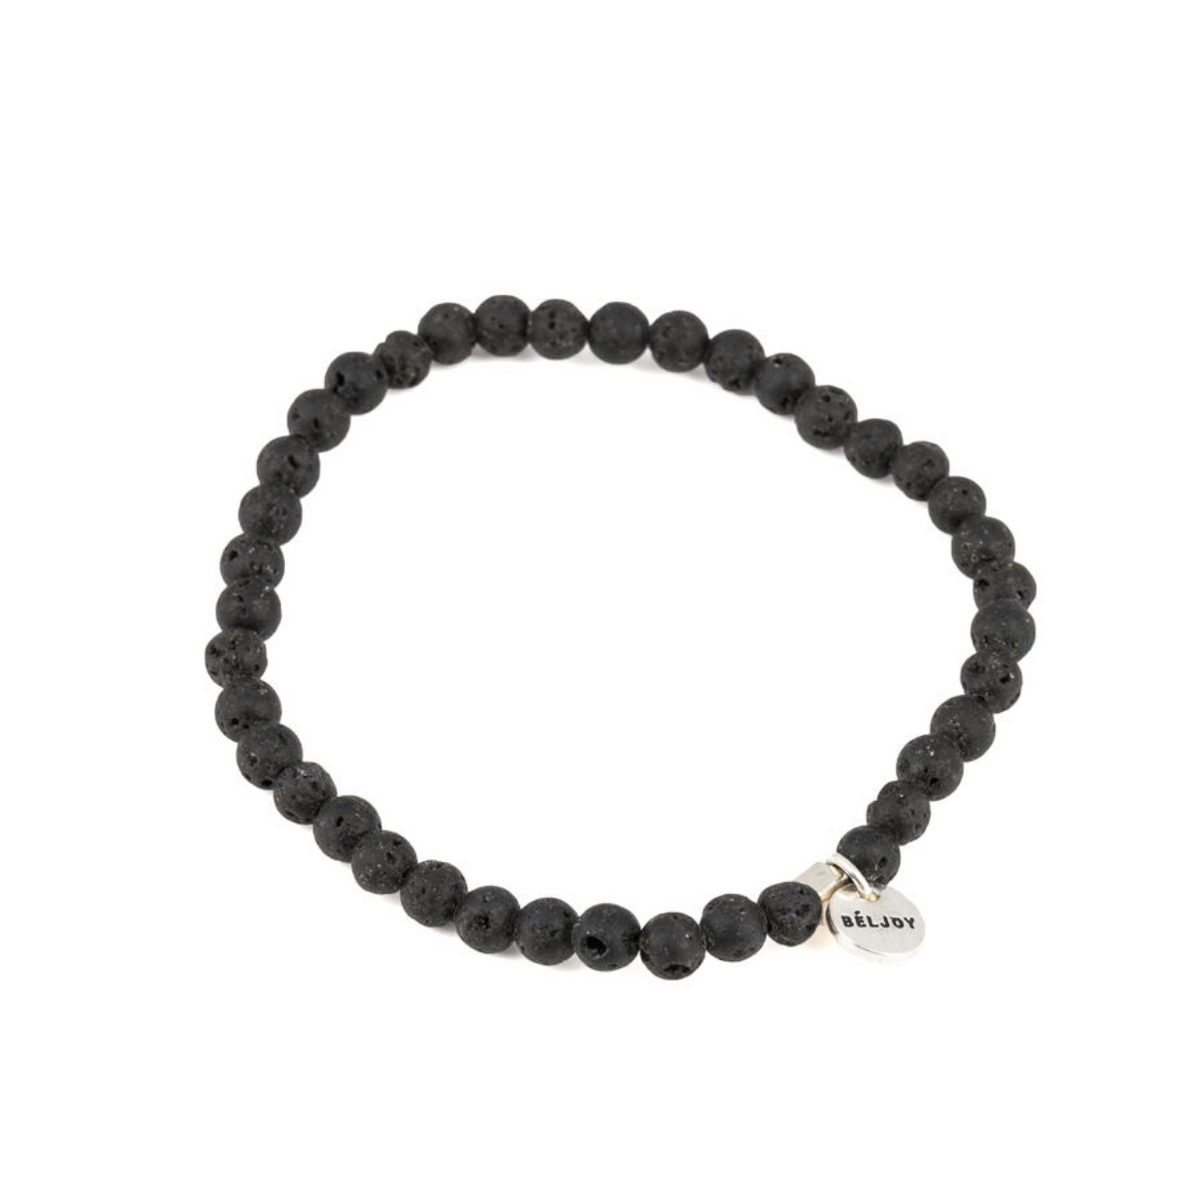 Balcum Essential Oil Bracelet